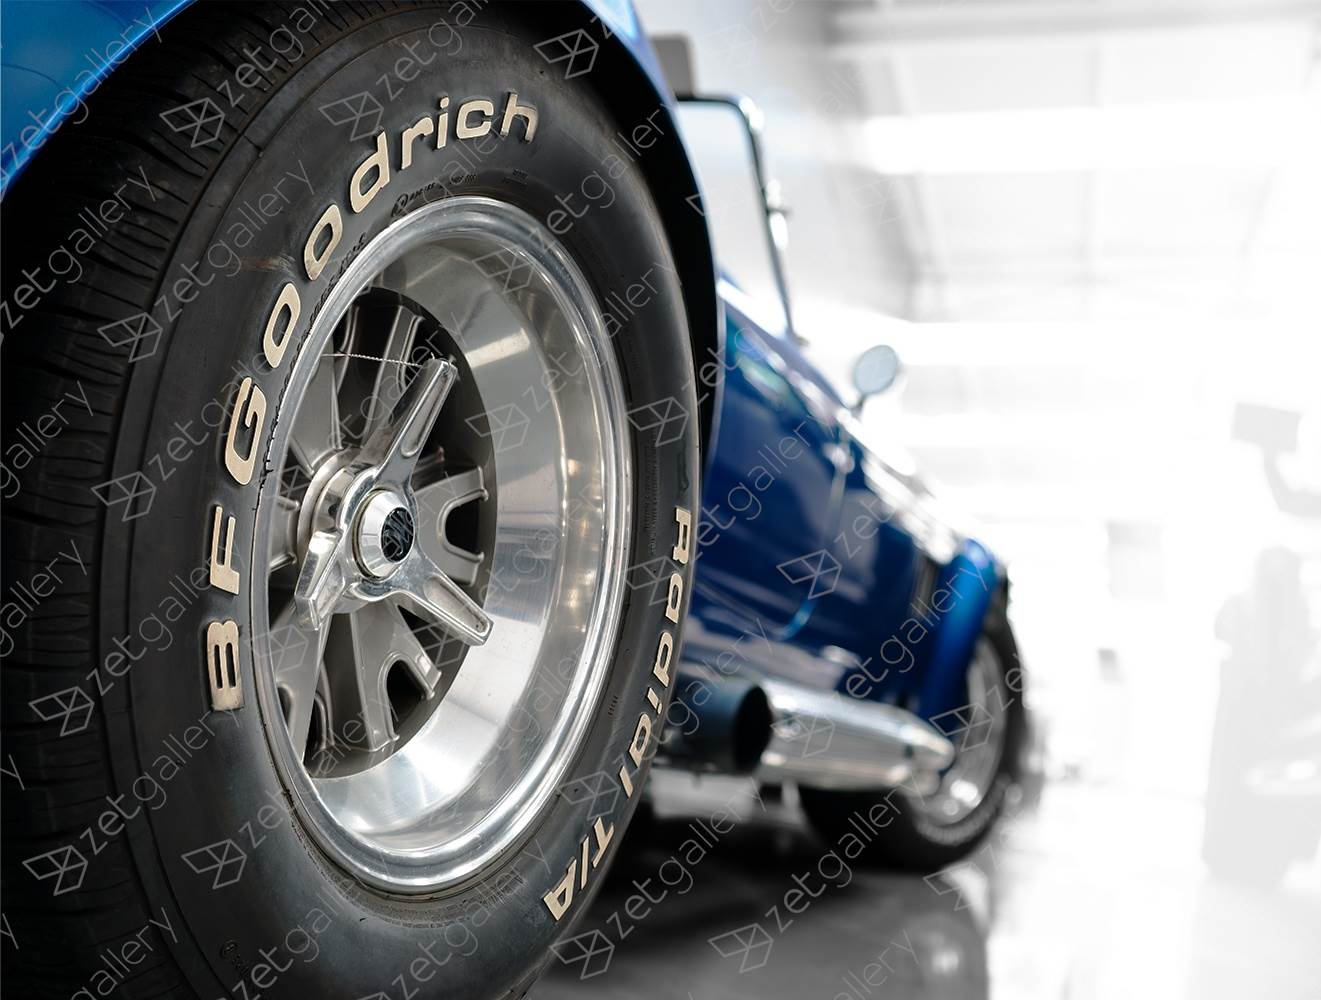 Shelby Cobra 427 01, original Avant-Garde Digital Photography by Yggdrasil Art